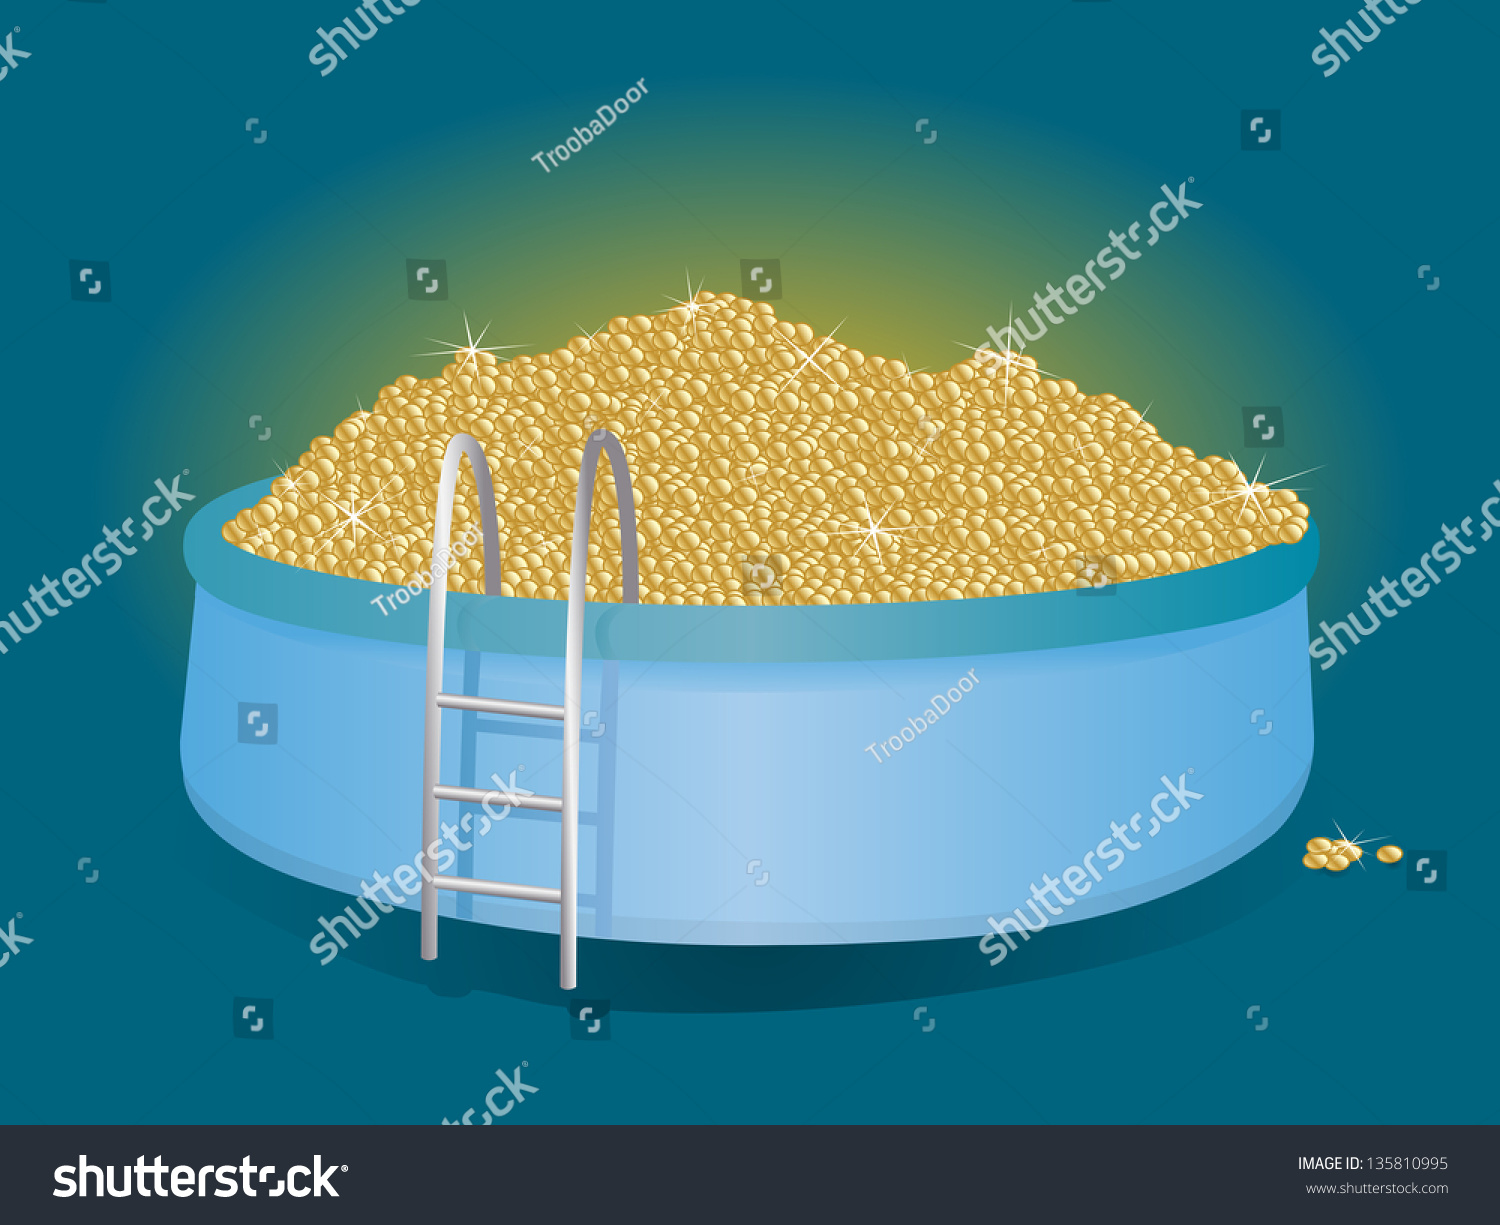 Mountain of gold coins